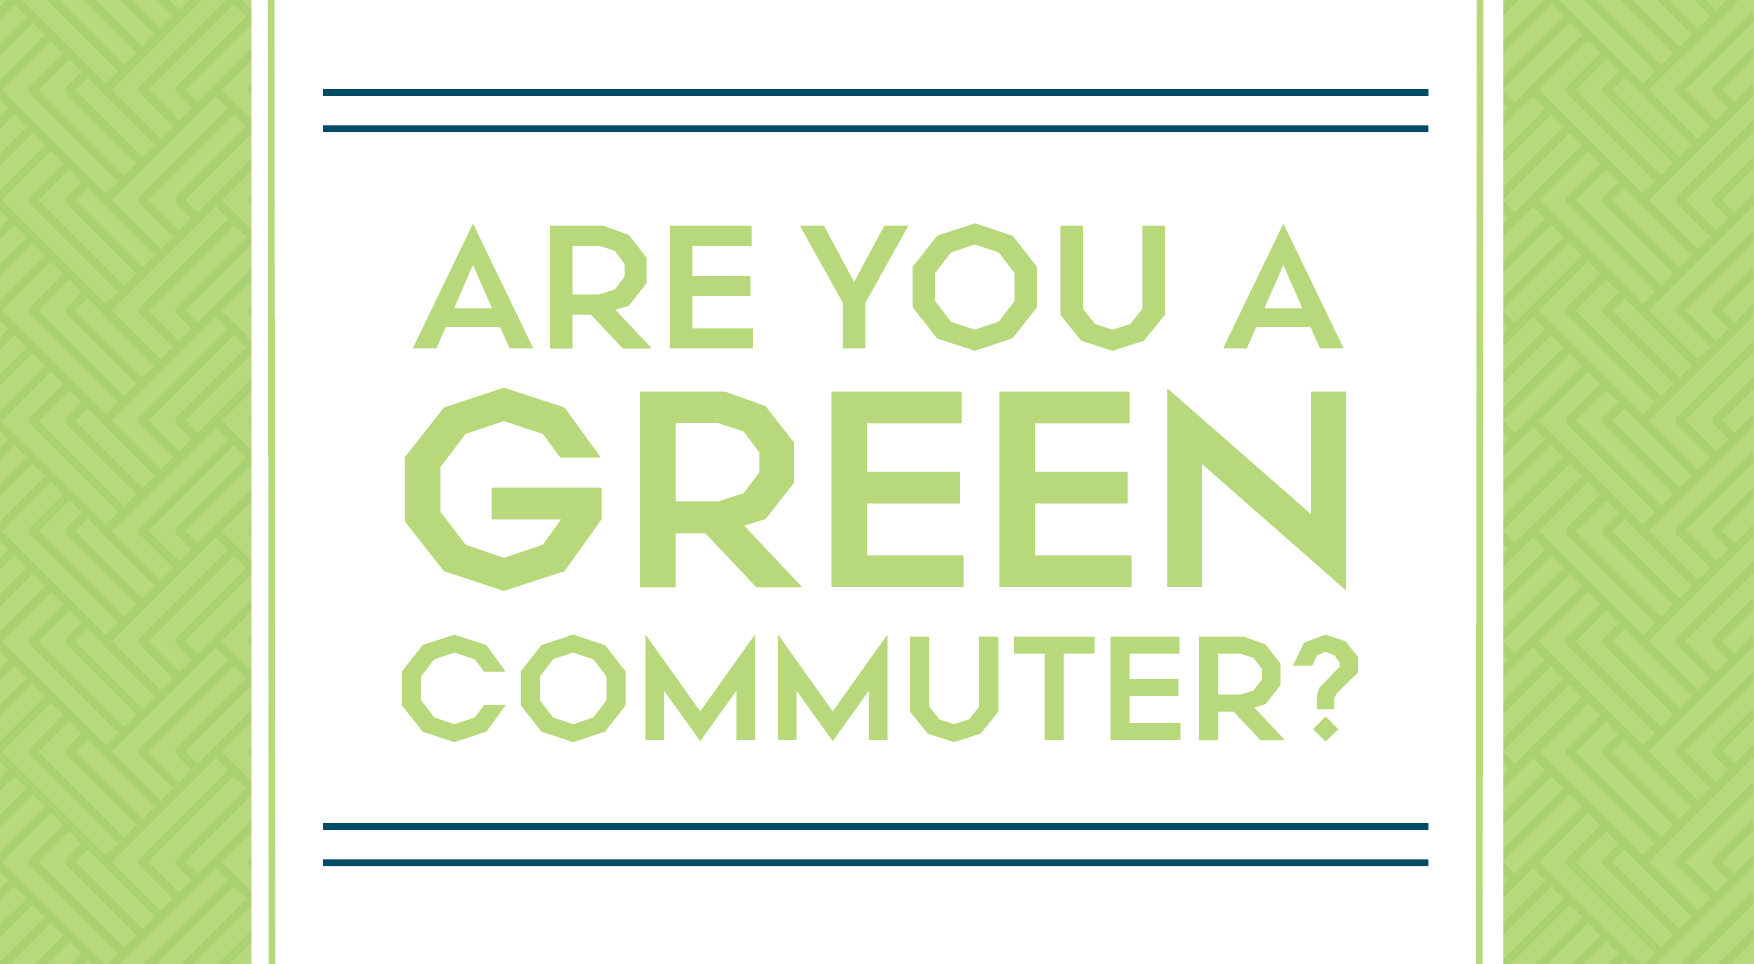 Are You a Green Commuter?